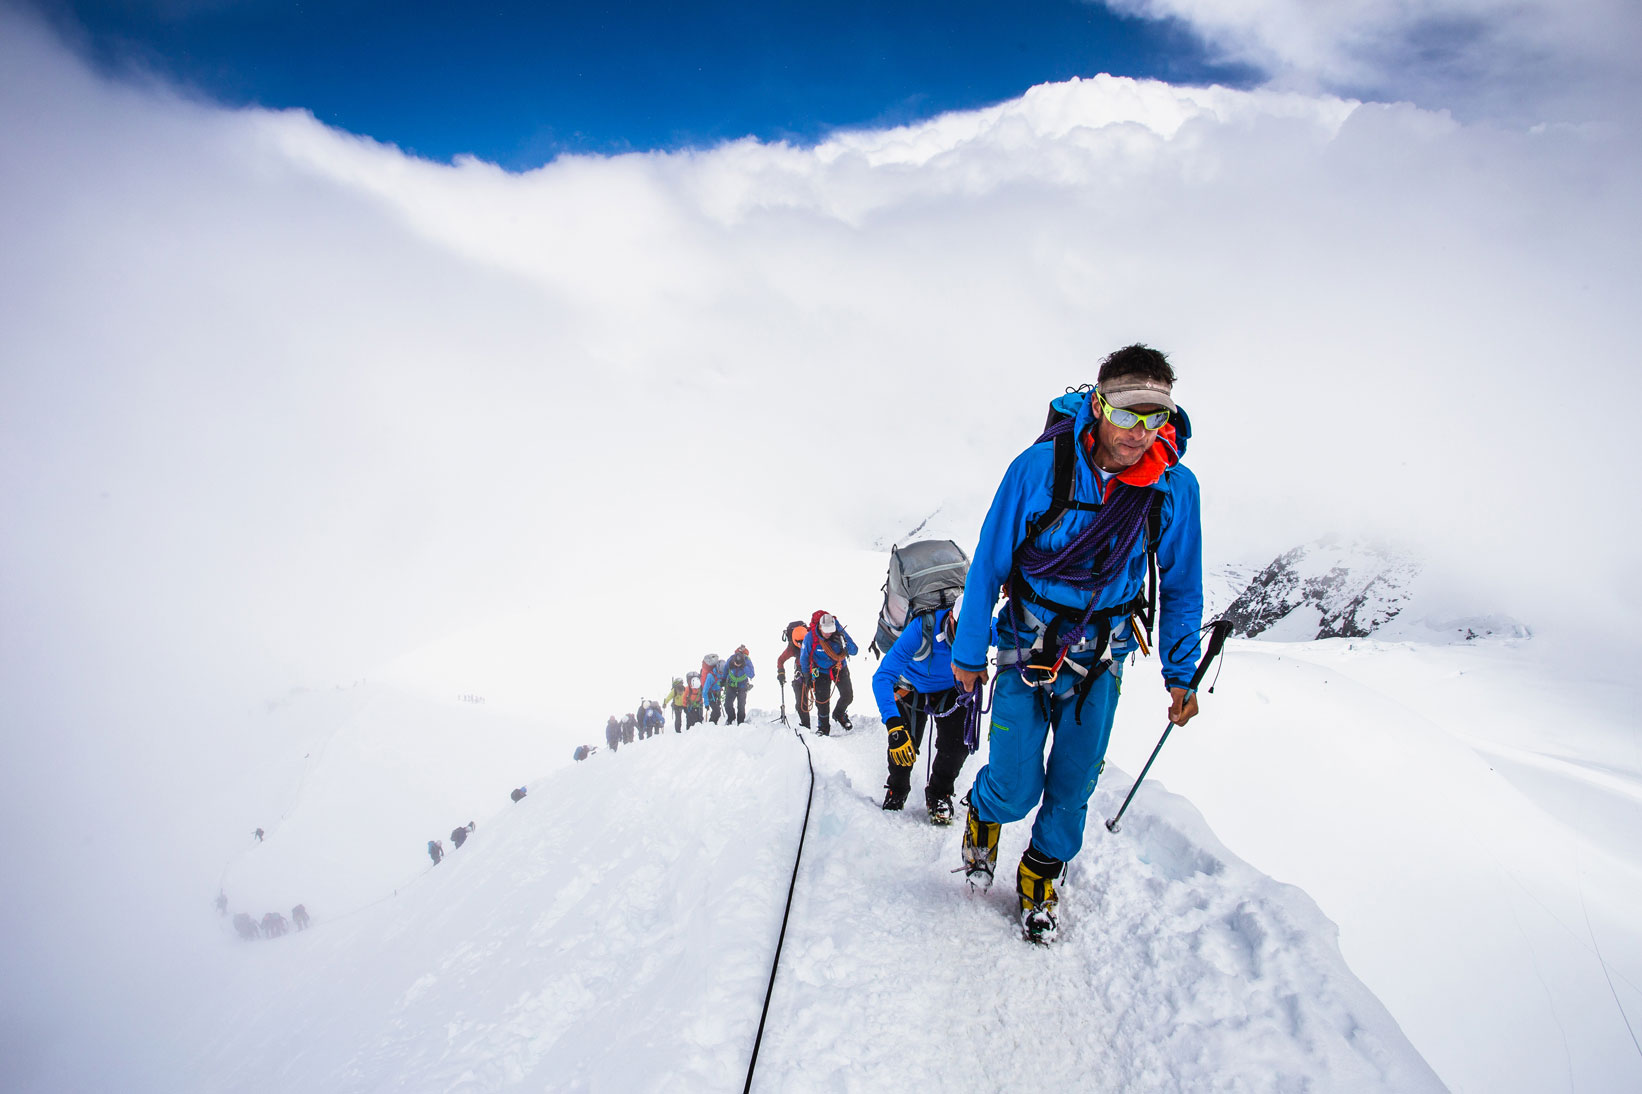 Trailer video for this year's Arc'teryx Alpine Academy